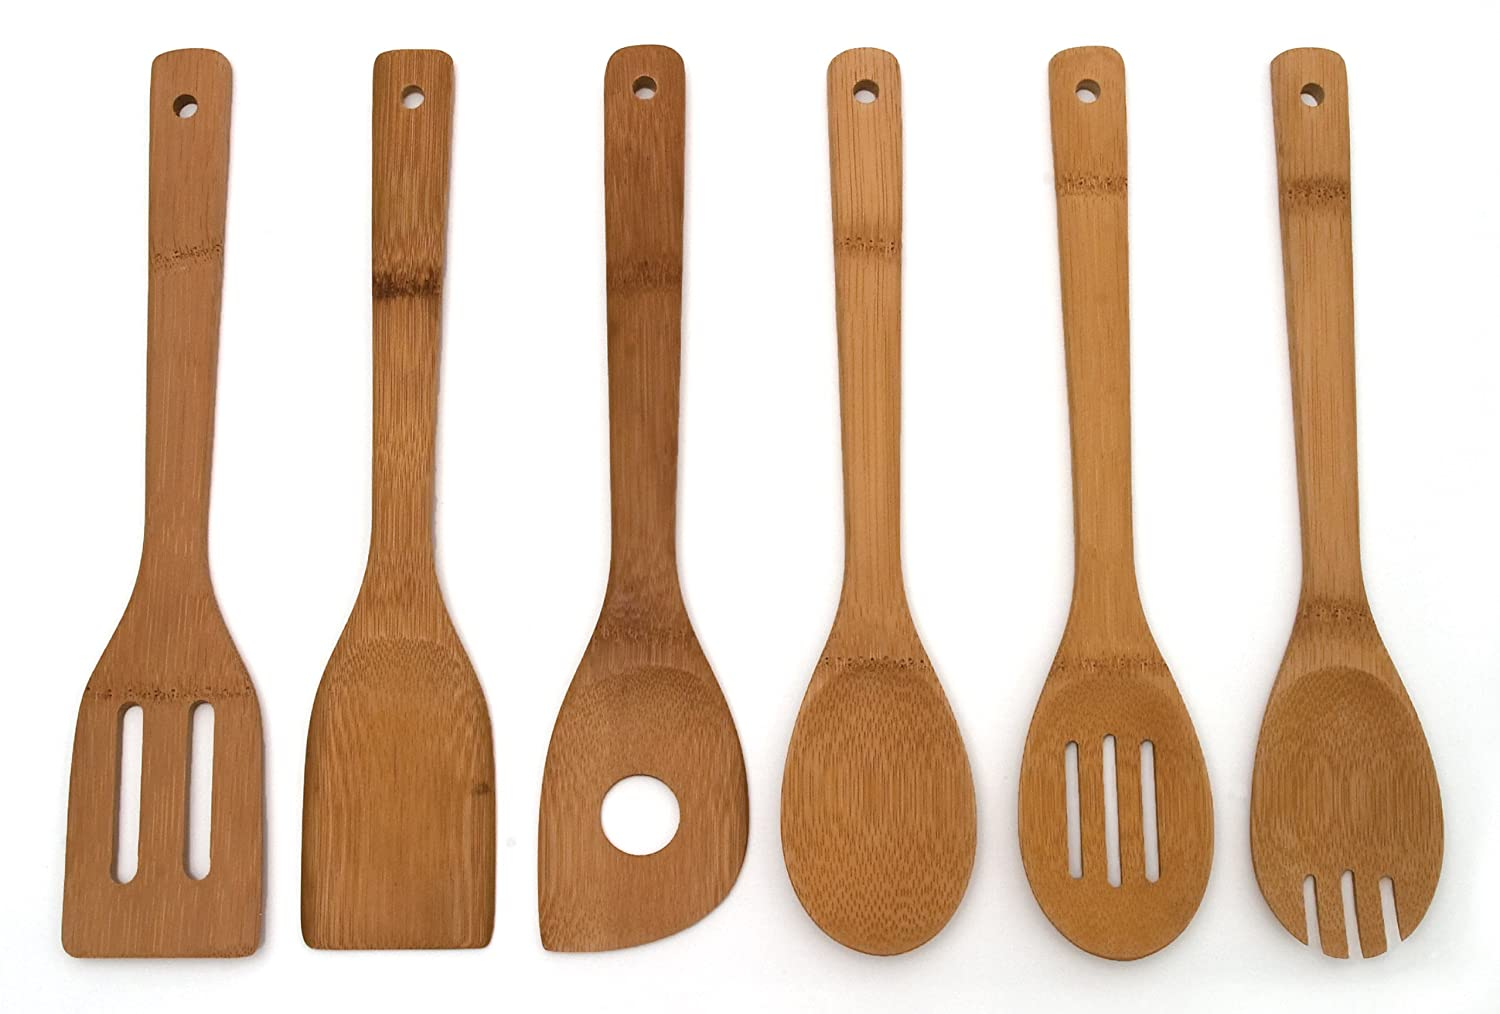 Amazon.com: Cooking Utensils: Home & Kitchen: Spatulas, Spoons